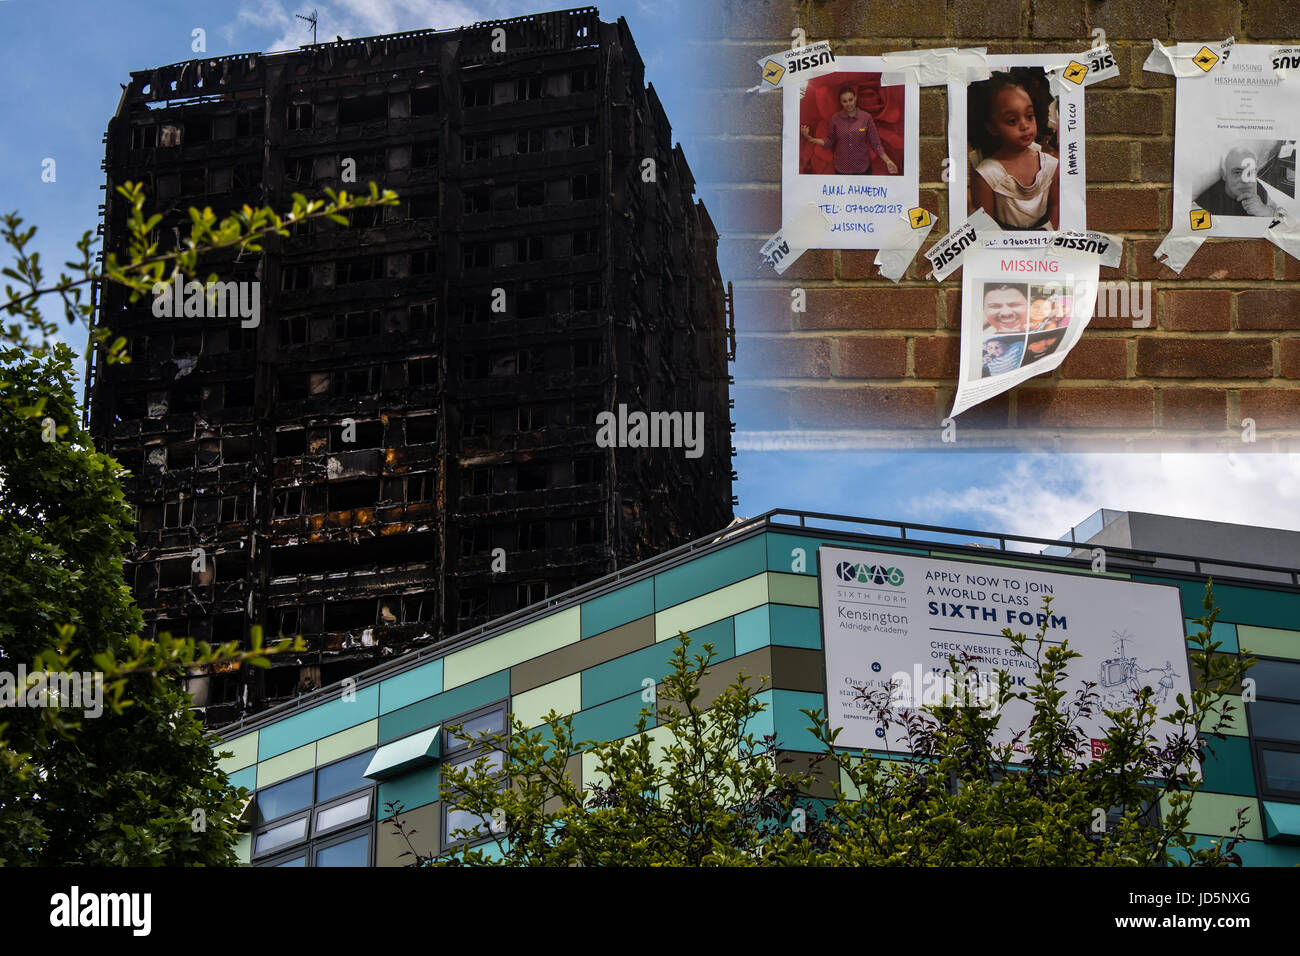 LONDON, UK - JUNE 16 2017 Grenfell tower after fire, with Kensington Aldridge Academy and missing people - Stock Image